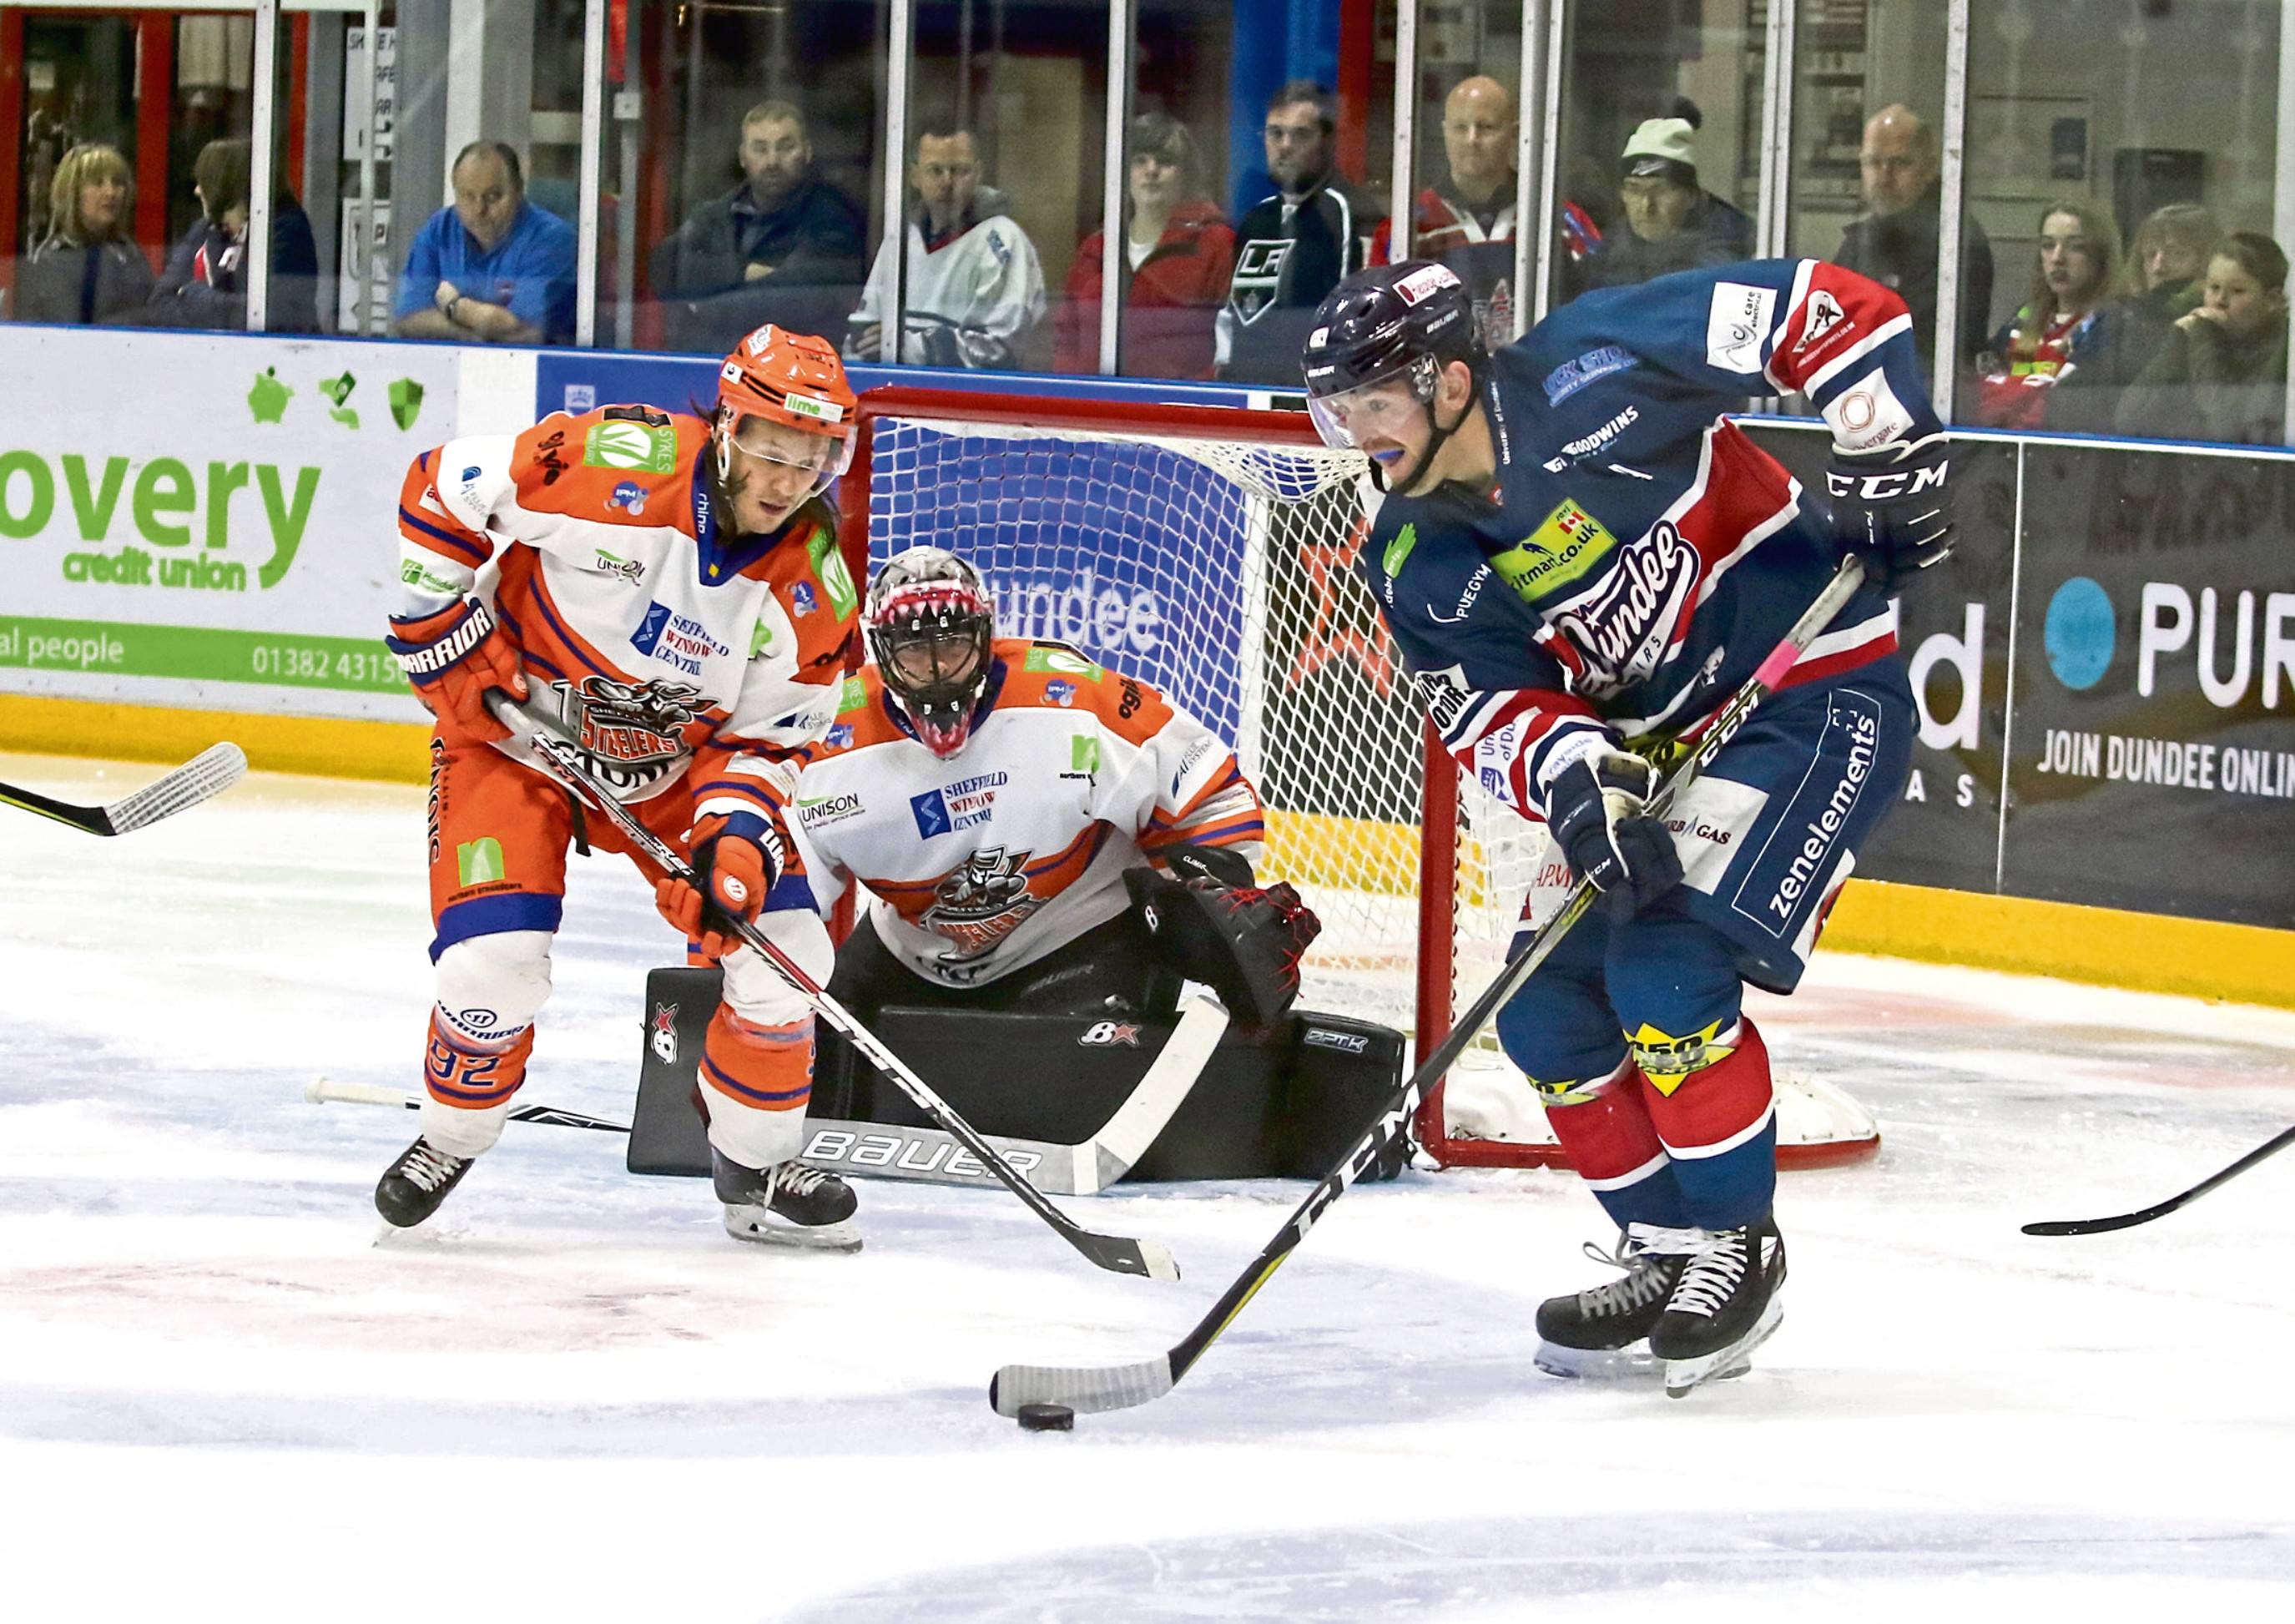 Dundee Stars' Brian Hart attacks the Steelers goal. However, it was to no avail as he was out of luck throughout the night at Dundee Ice Arena.